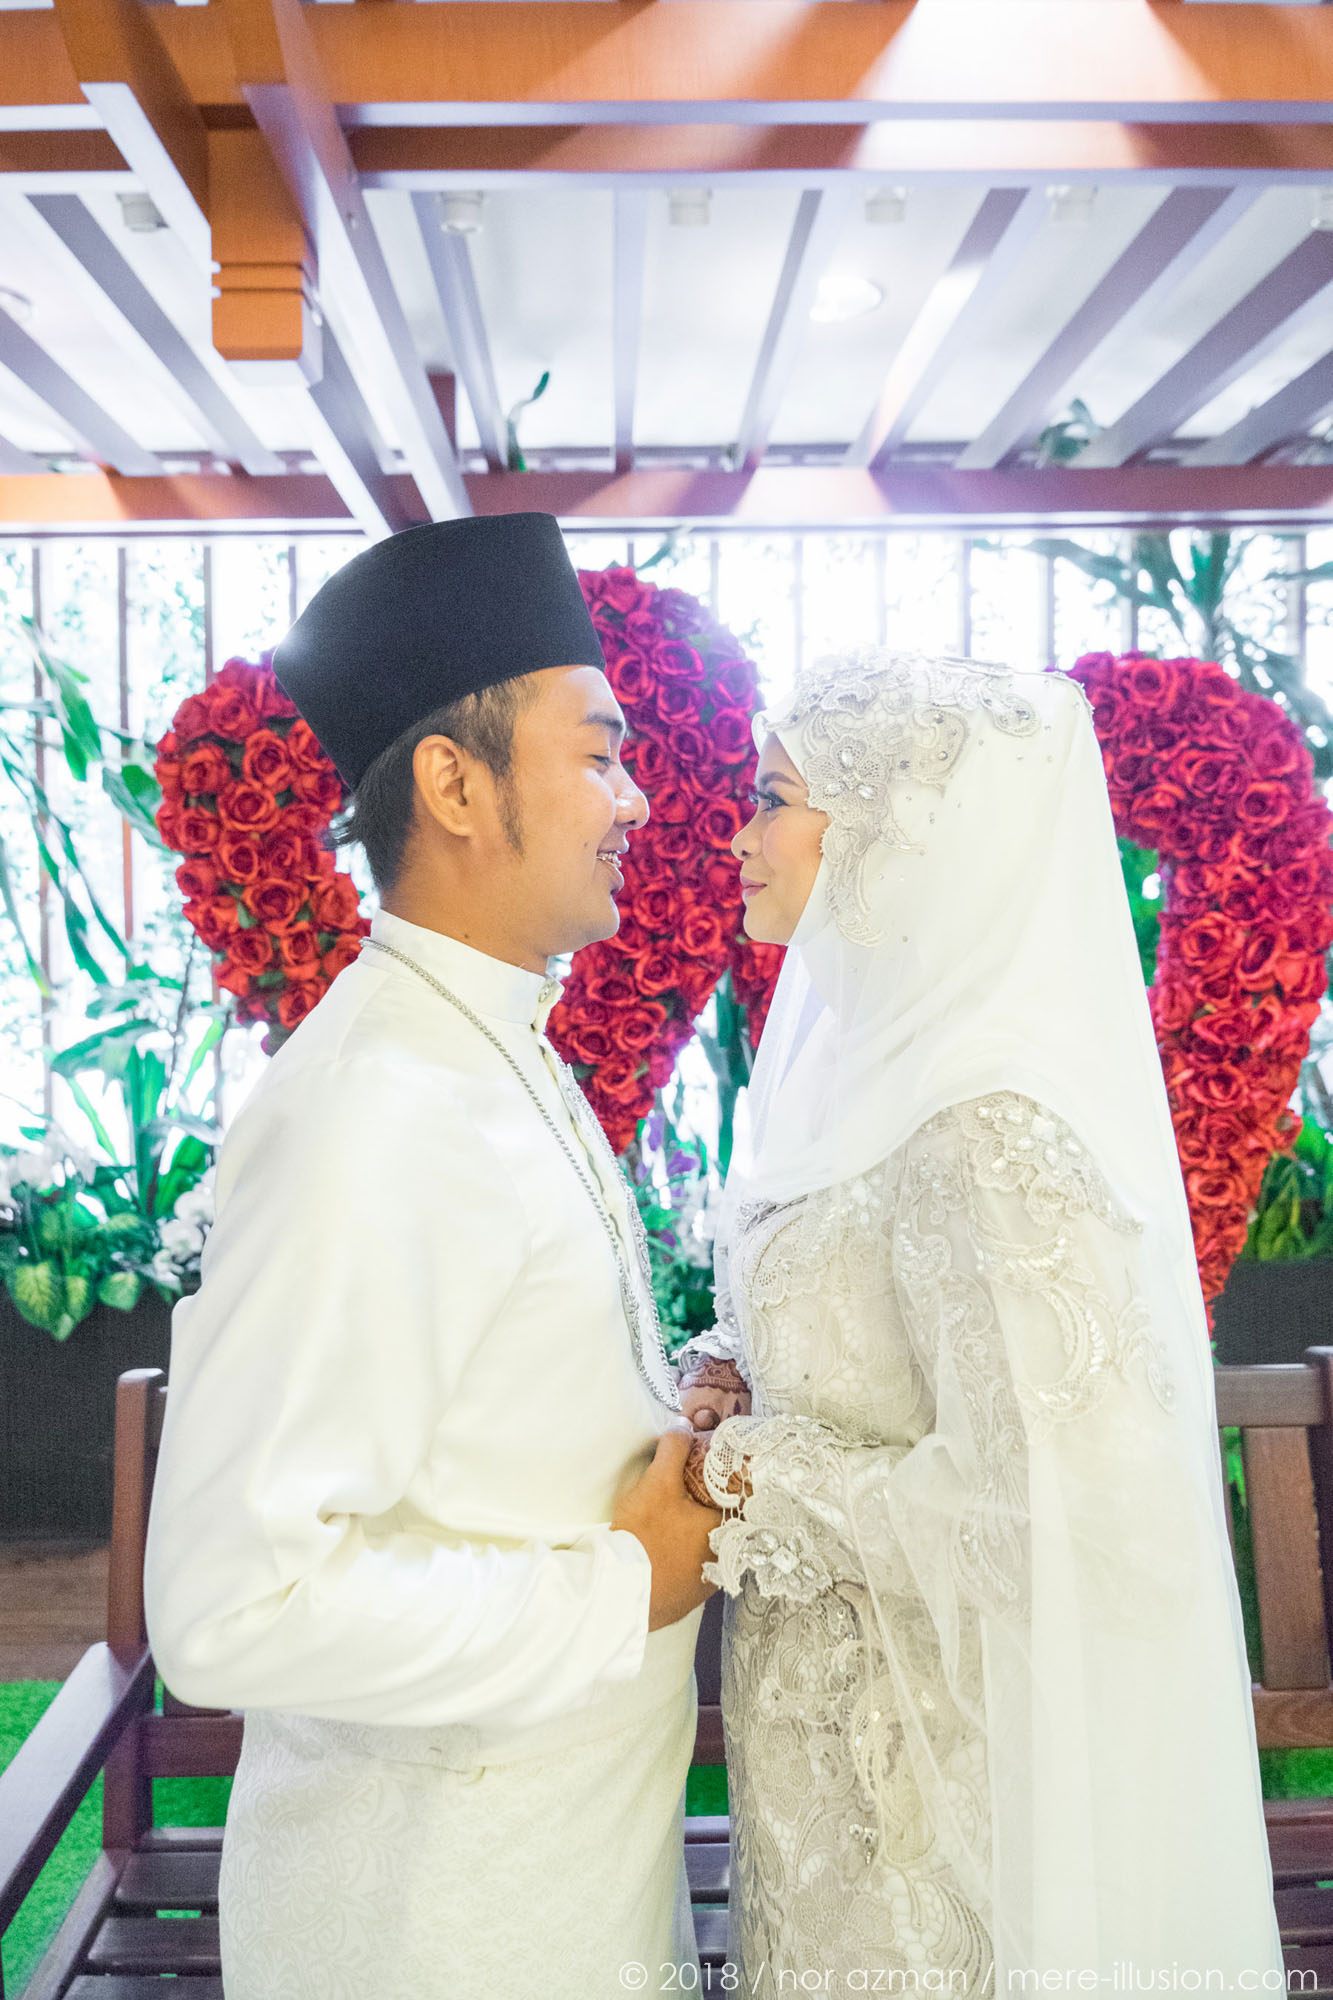 mere illusion nor azman razin mira post nikah